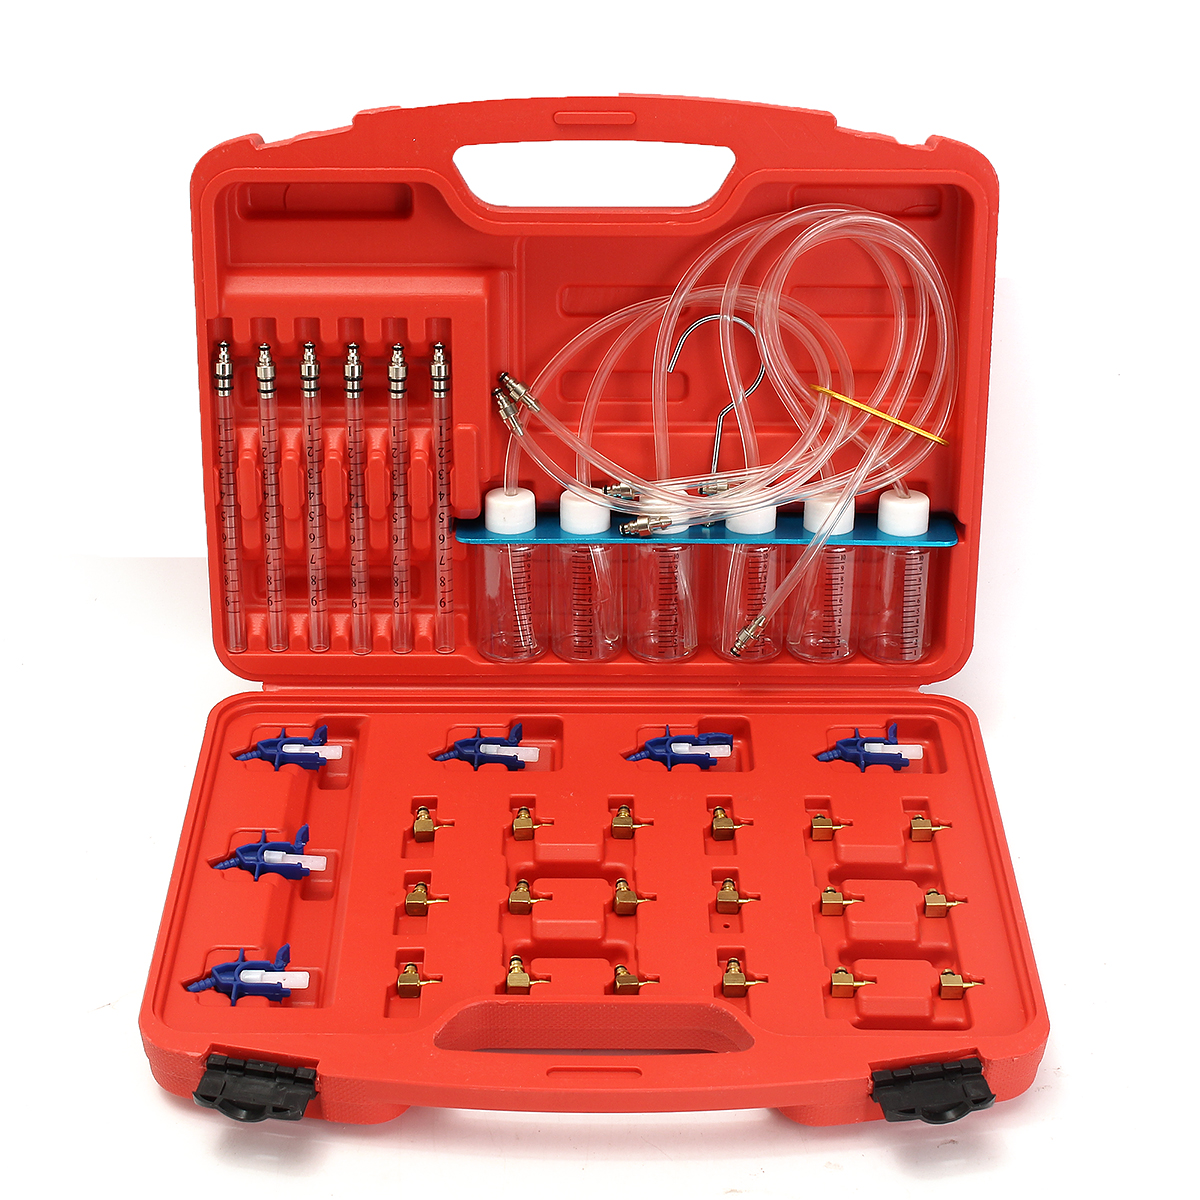 цена на 36Pcs Injector Flow Meter Adapter Test Kits For Common Rail for Diesel Fuel Tester Diagnosis Tool Set 6 injector tested together